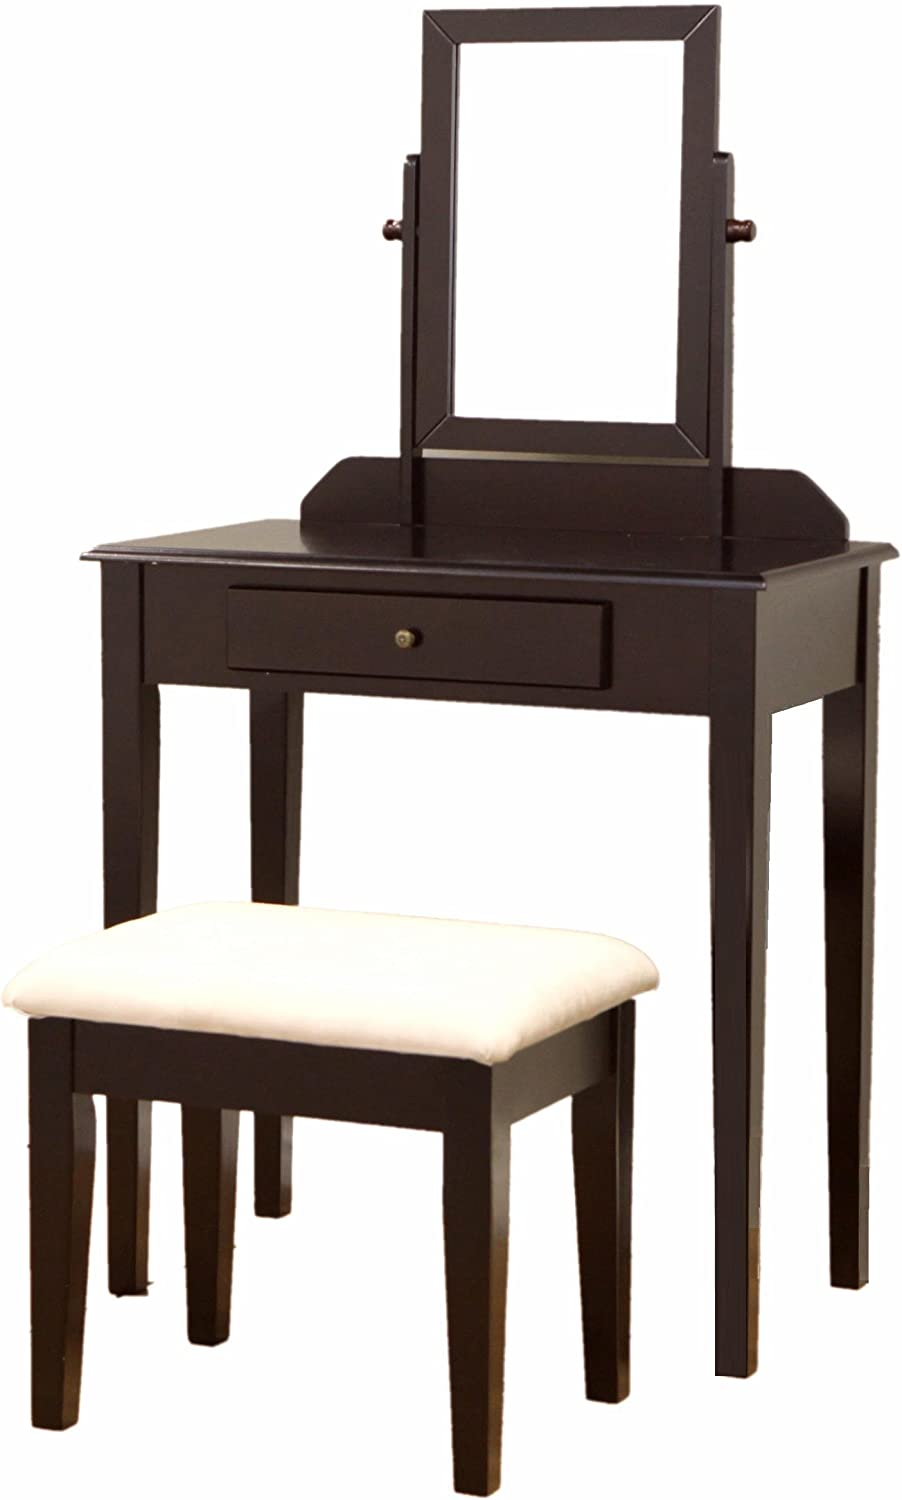 Frenchi Furniture Wood 3 Pc Set OFFicial store Vanity Miami Mall